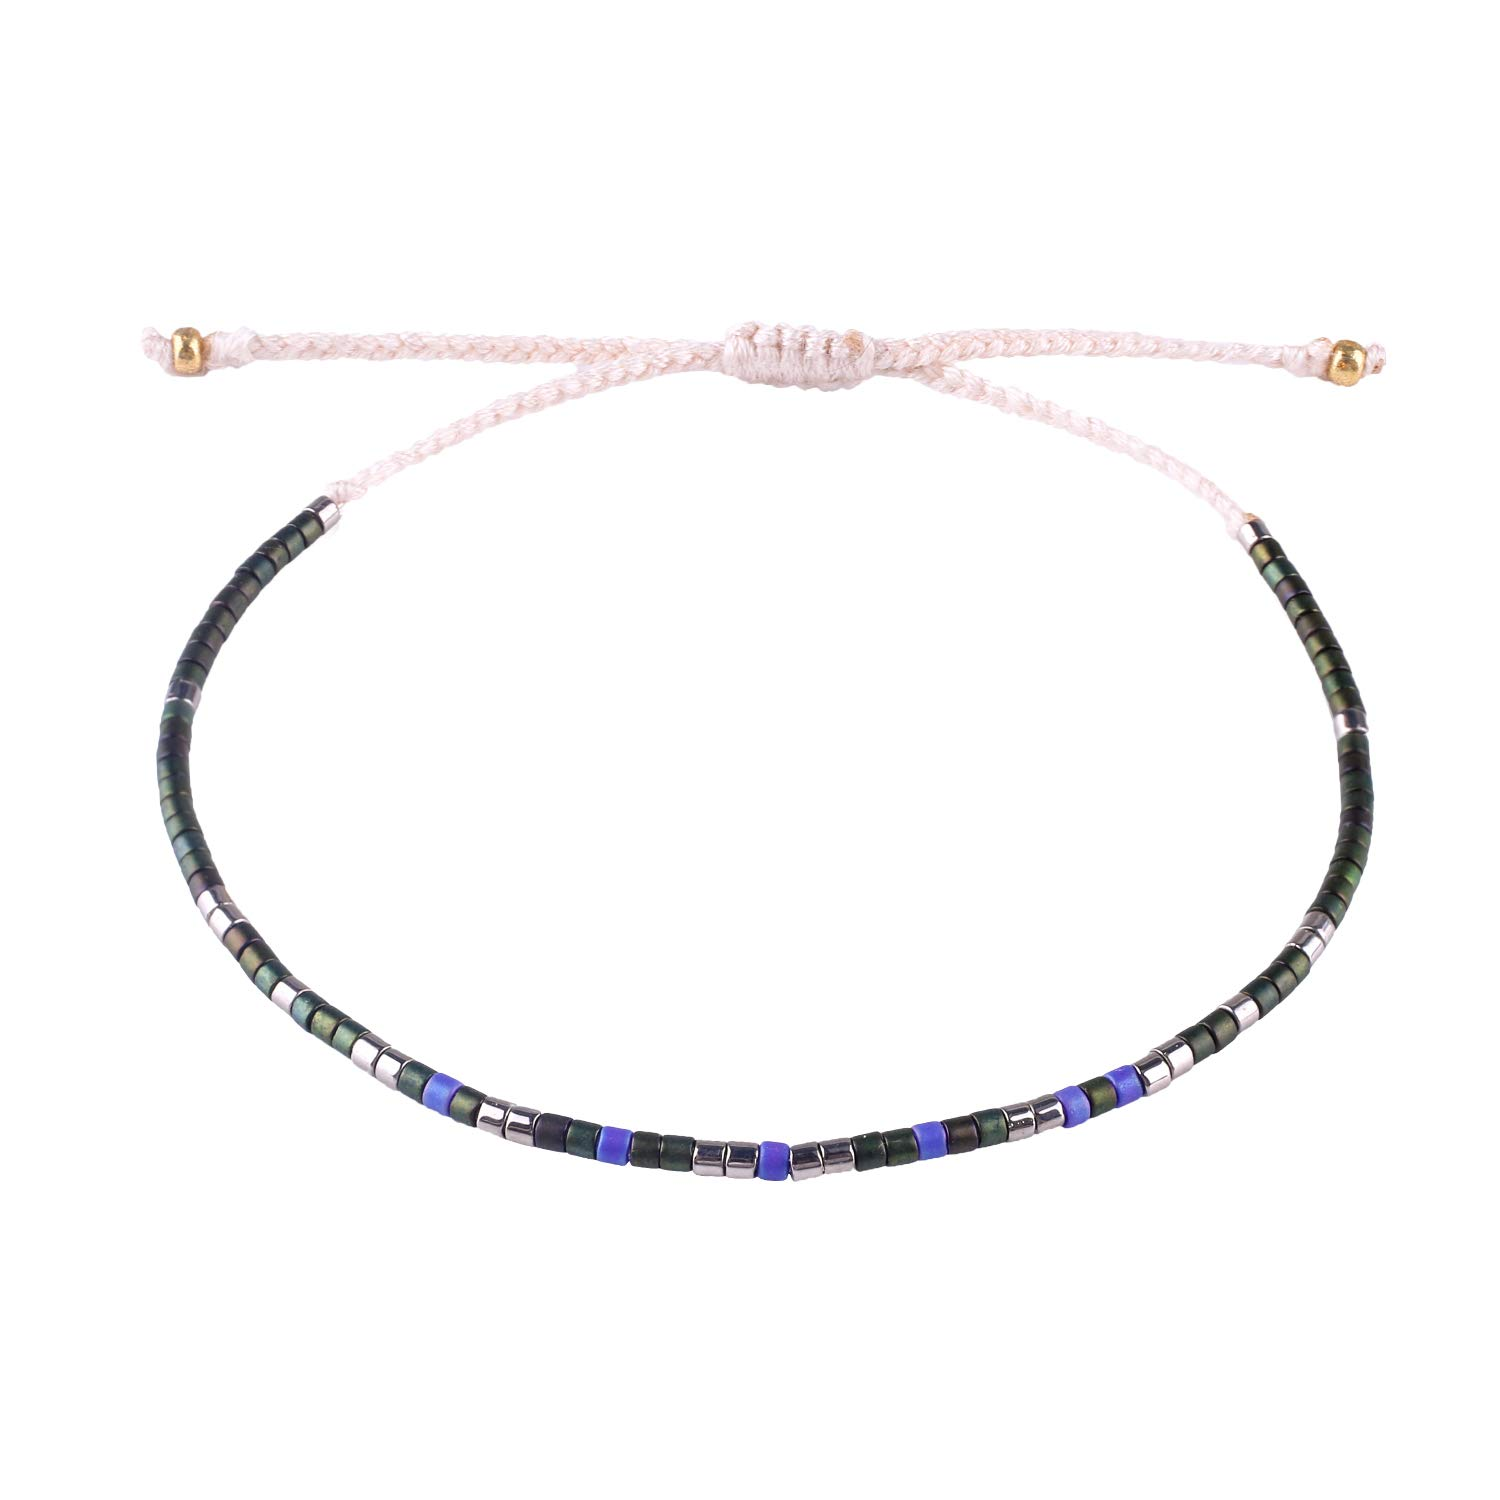 KELITCH Multicolor Crystal Shell Beaded Friendship Bracelets Hand Woven New Jewelry (Color G)